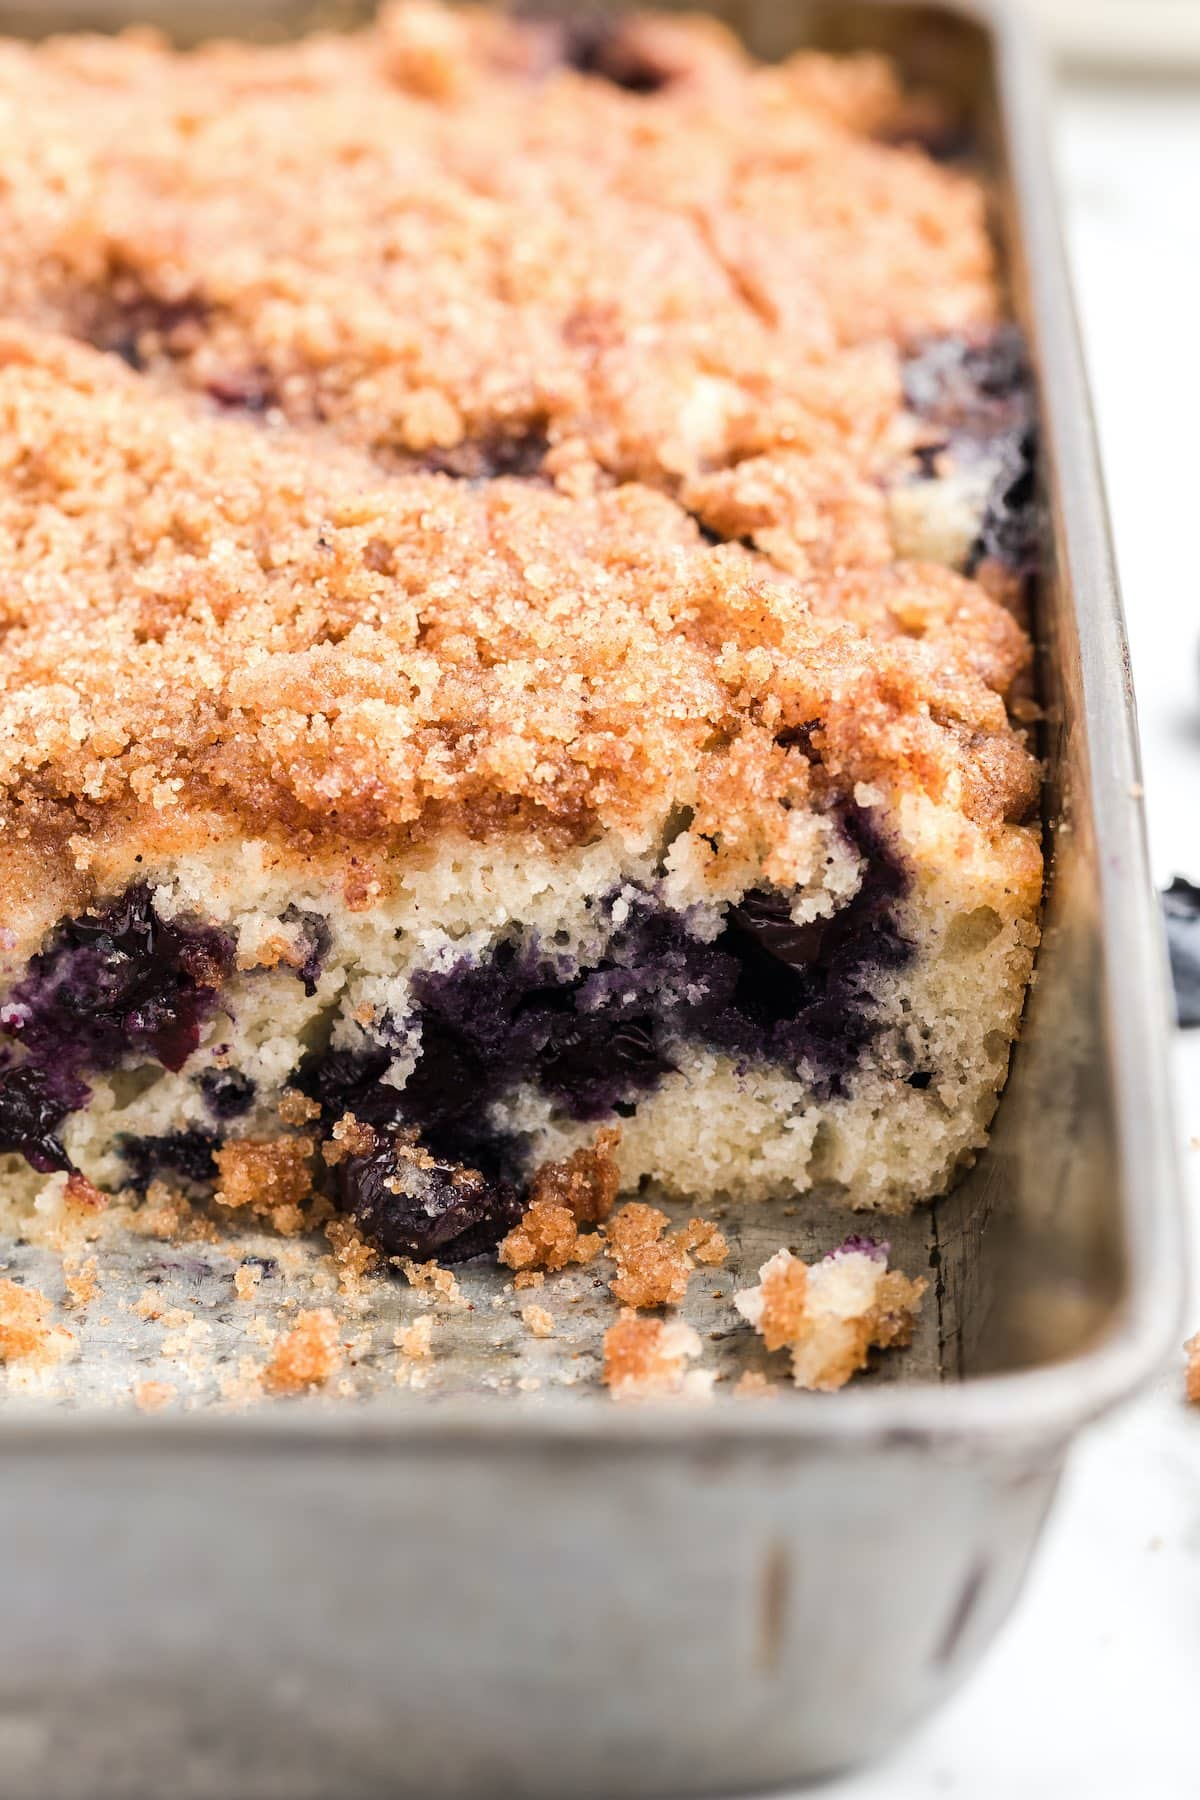 blueberry coffee cake in a pan